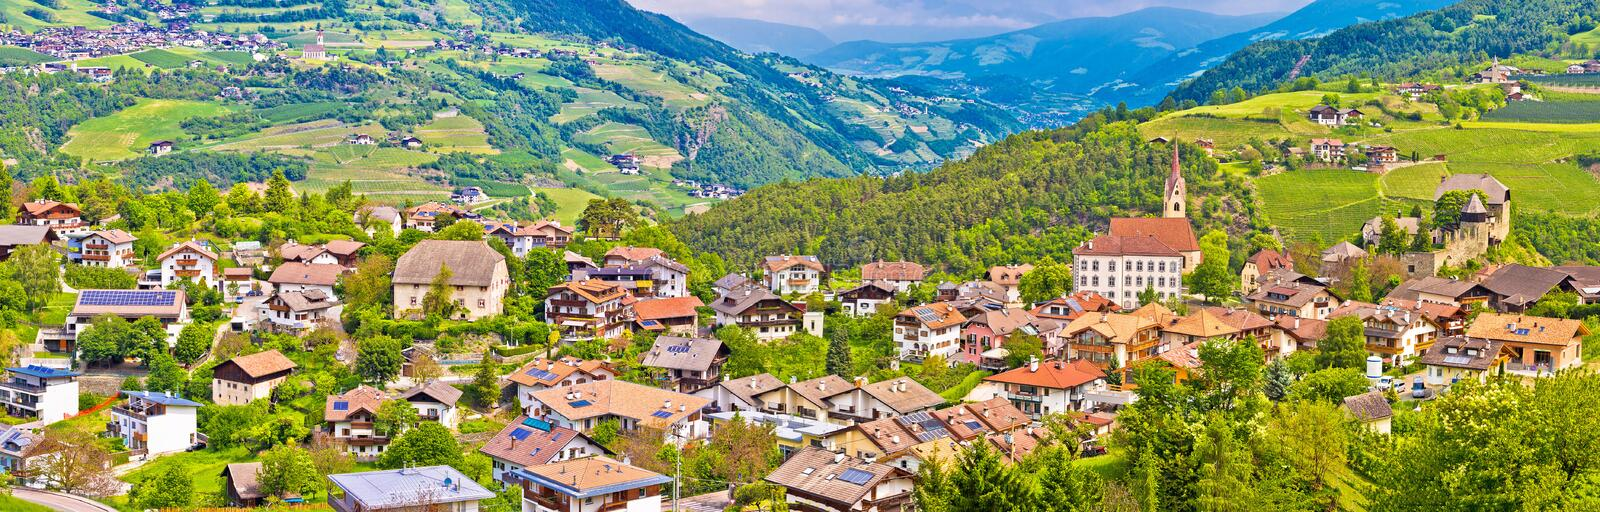 Idyllic alpine village of Gudon architecture and landscape panoramic view royalty free stock images